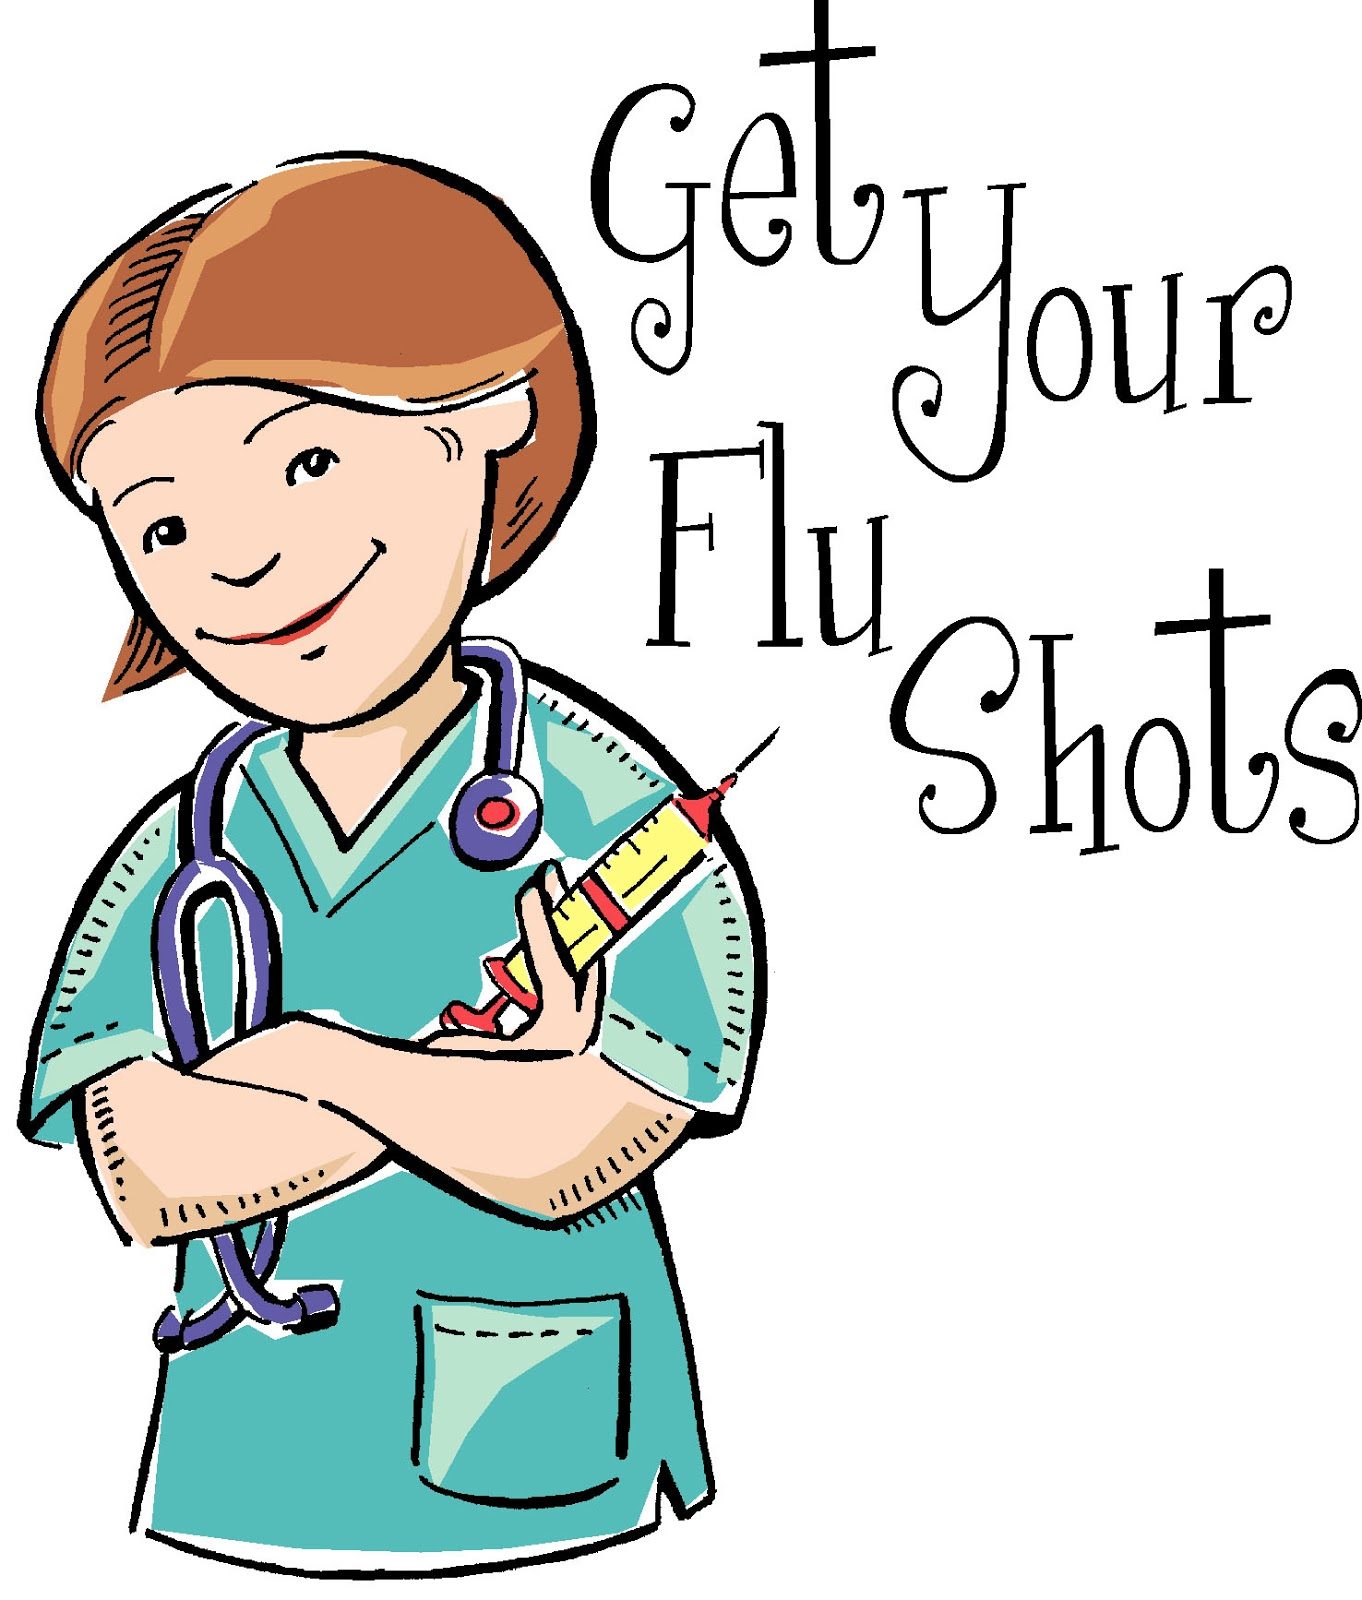 Ward off the flu clipart graphic free library Flu Images Group with 72+ items graphic free library